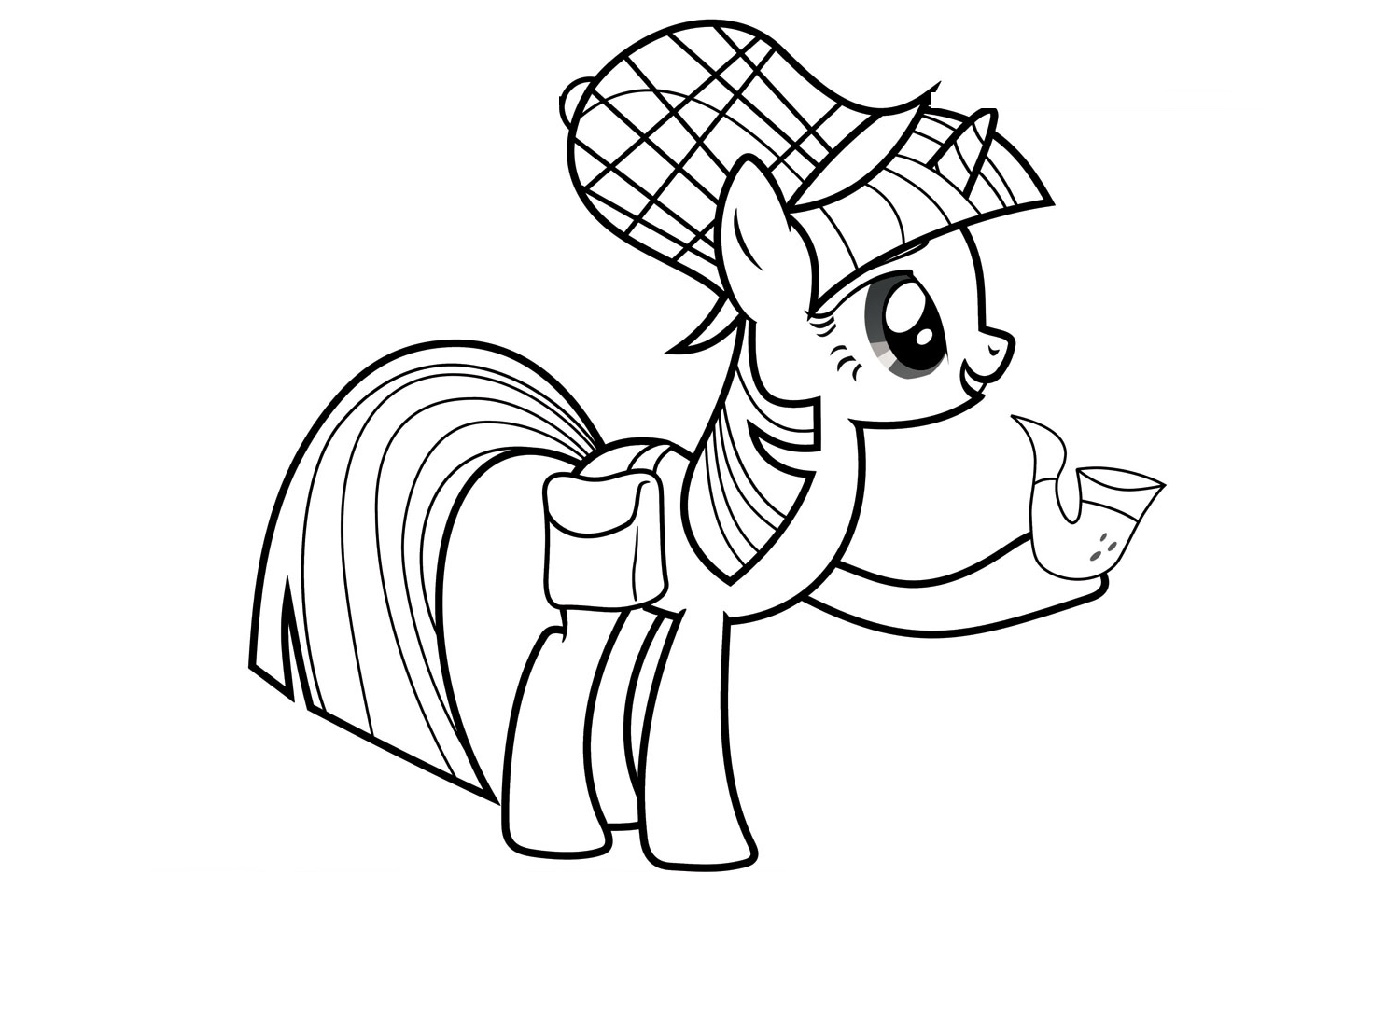 Alicorn Coloring Pages To Print